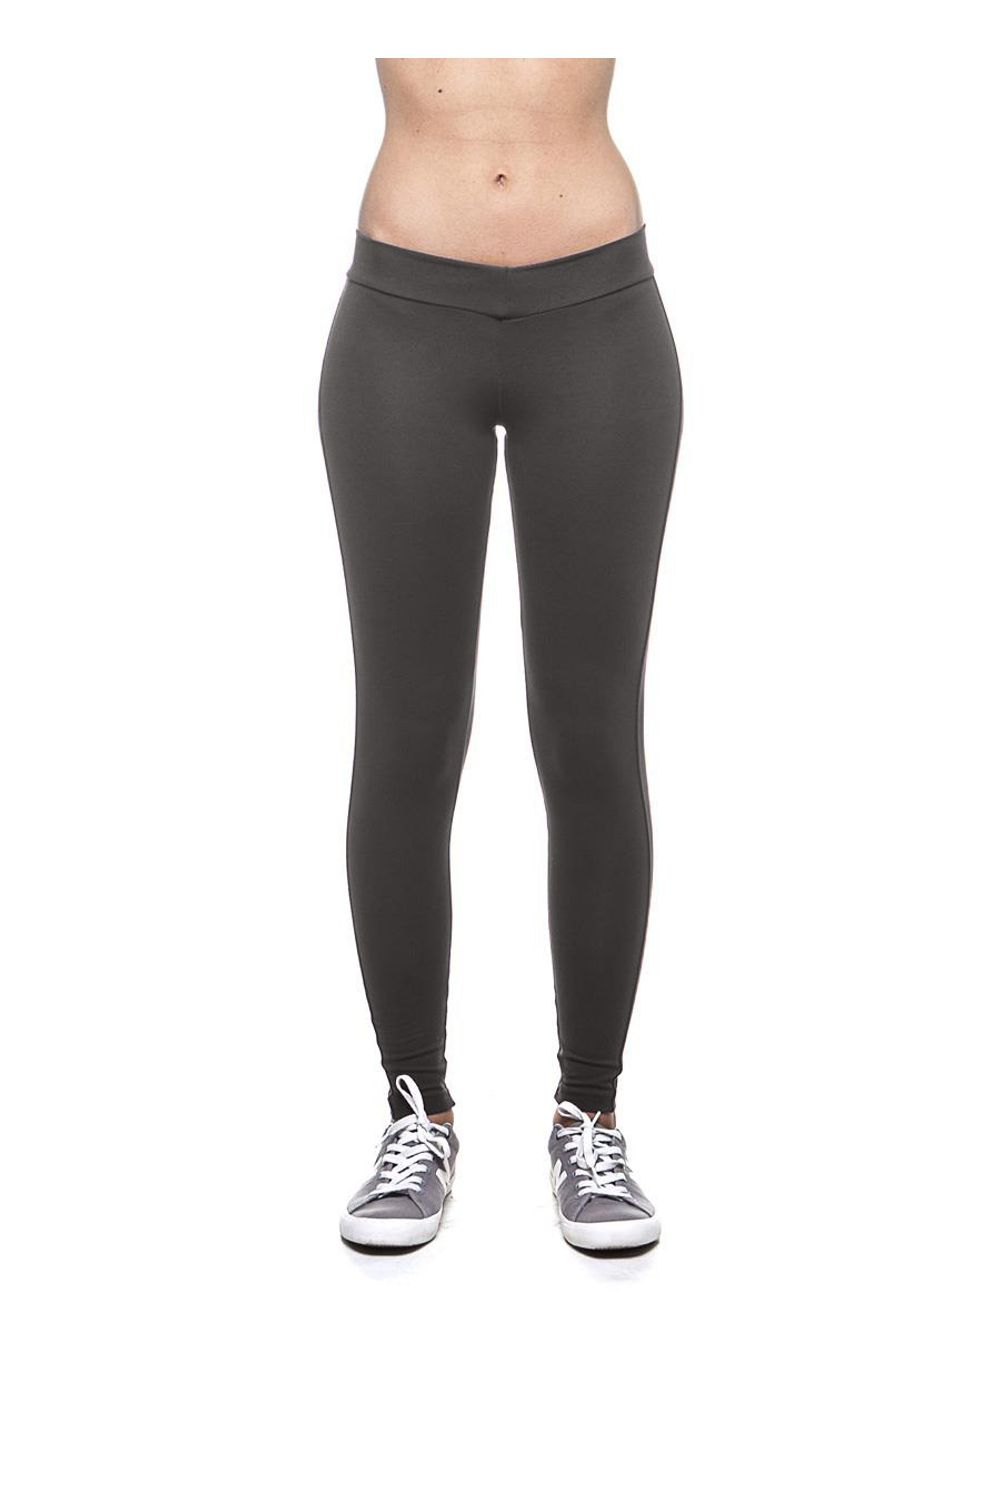 Calca-Legging-Fitness-Suplex-Power-Basica-I13-2--6-